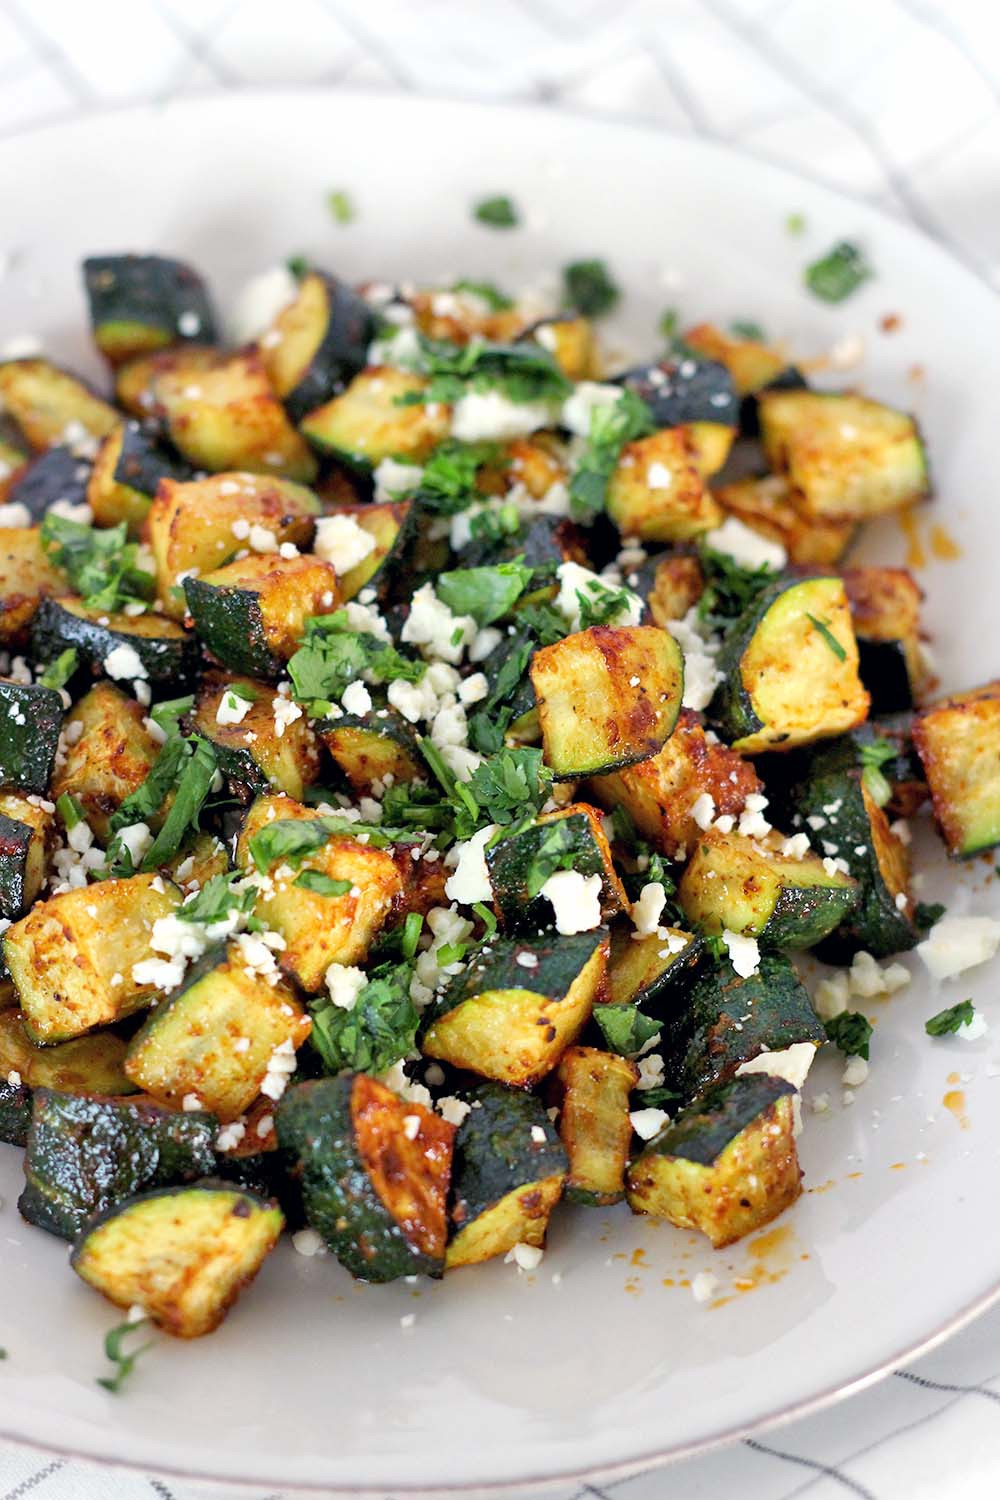 Low Carb Vegetable Side Dishes  15 Easy Low Carb Ve able Recipes Primal Edge Health